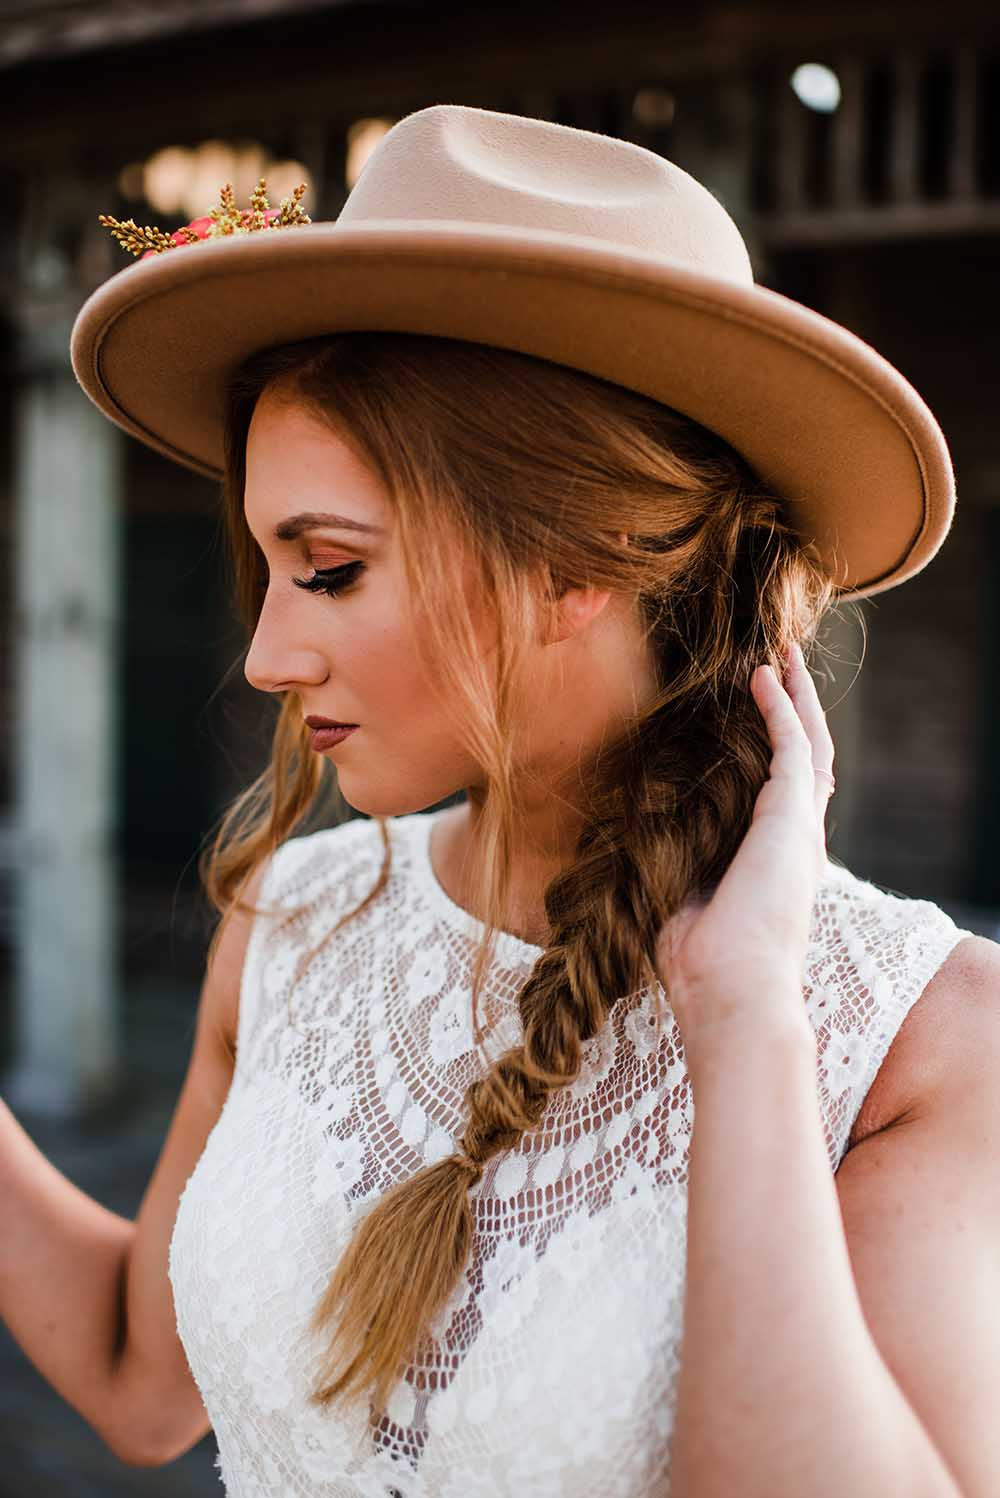 Boho Bridal Style with Felt Hat & Fishtail Braid | photo by MBM Photography | featured on I Do Y'all